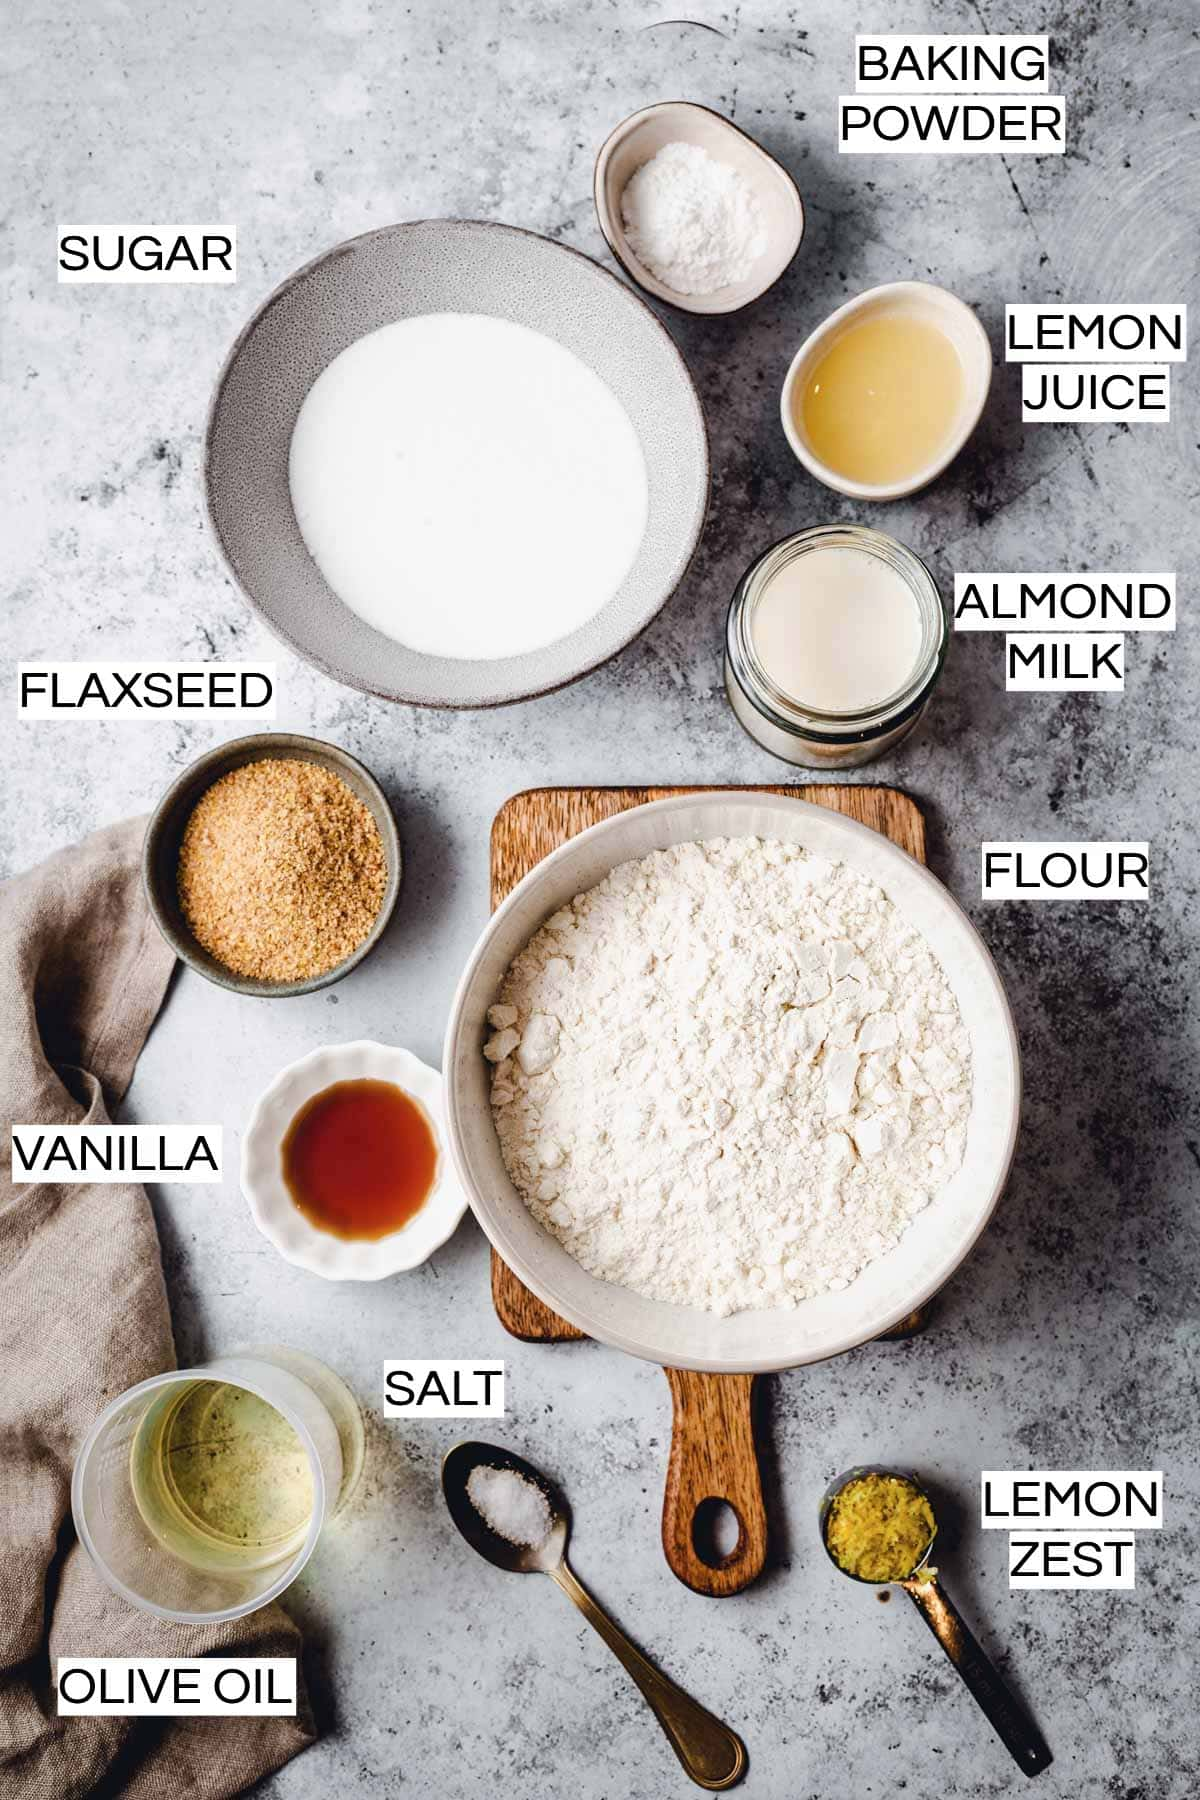 Various ingredients needed to bake a lemon cake laid out on a flat grey surface.